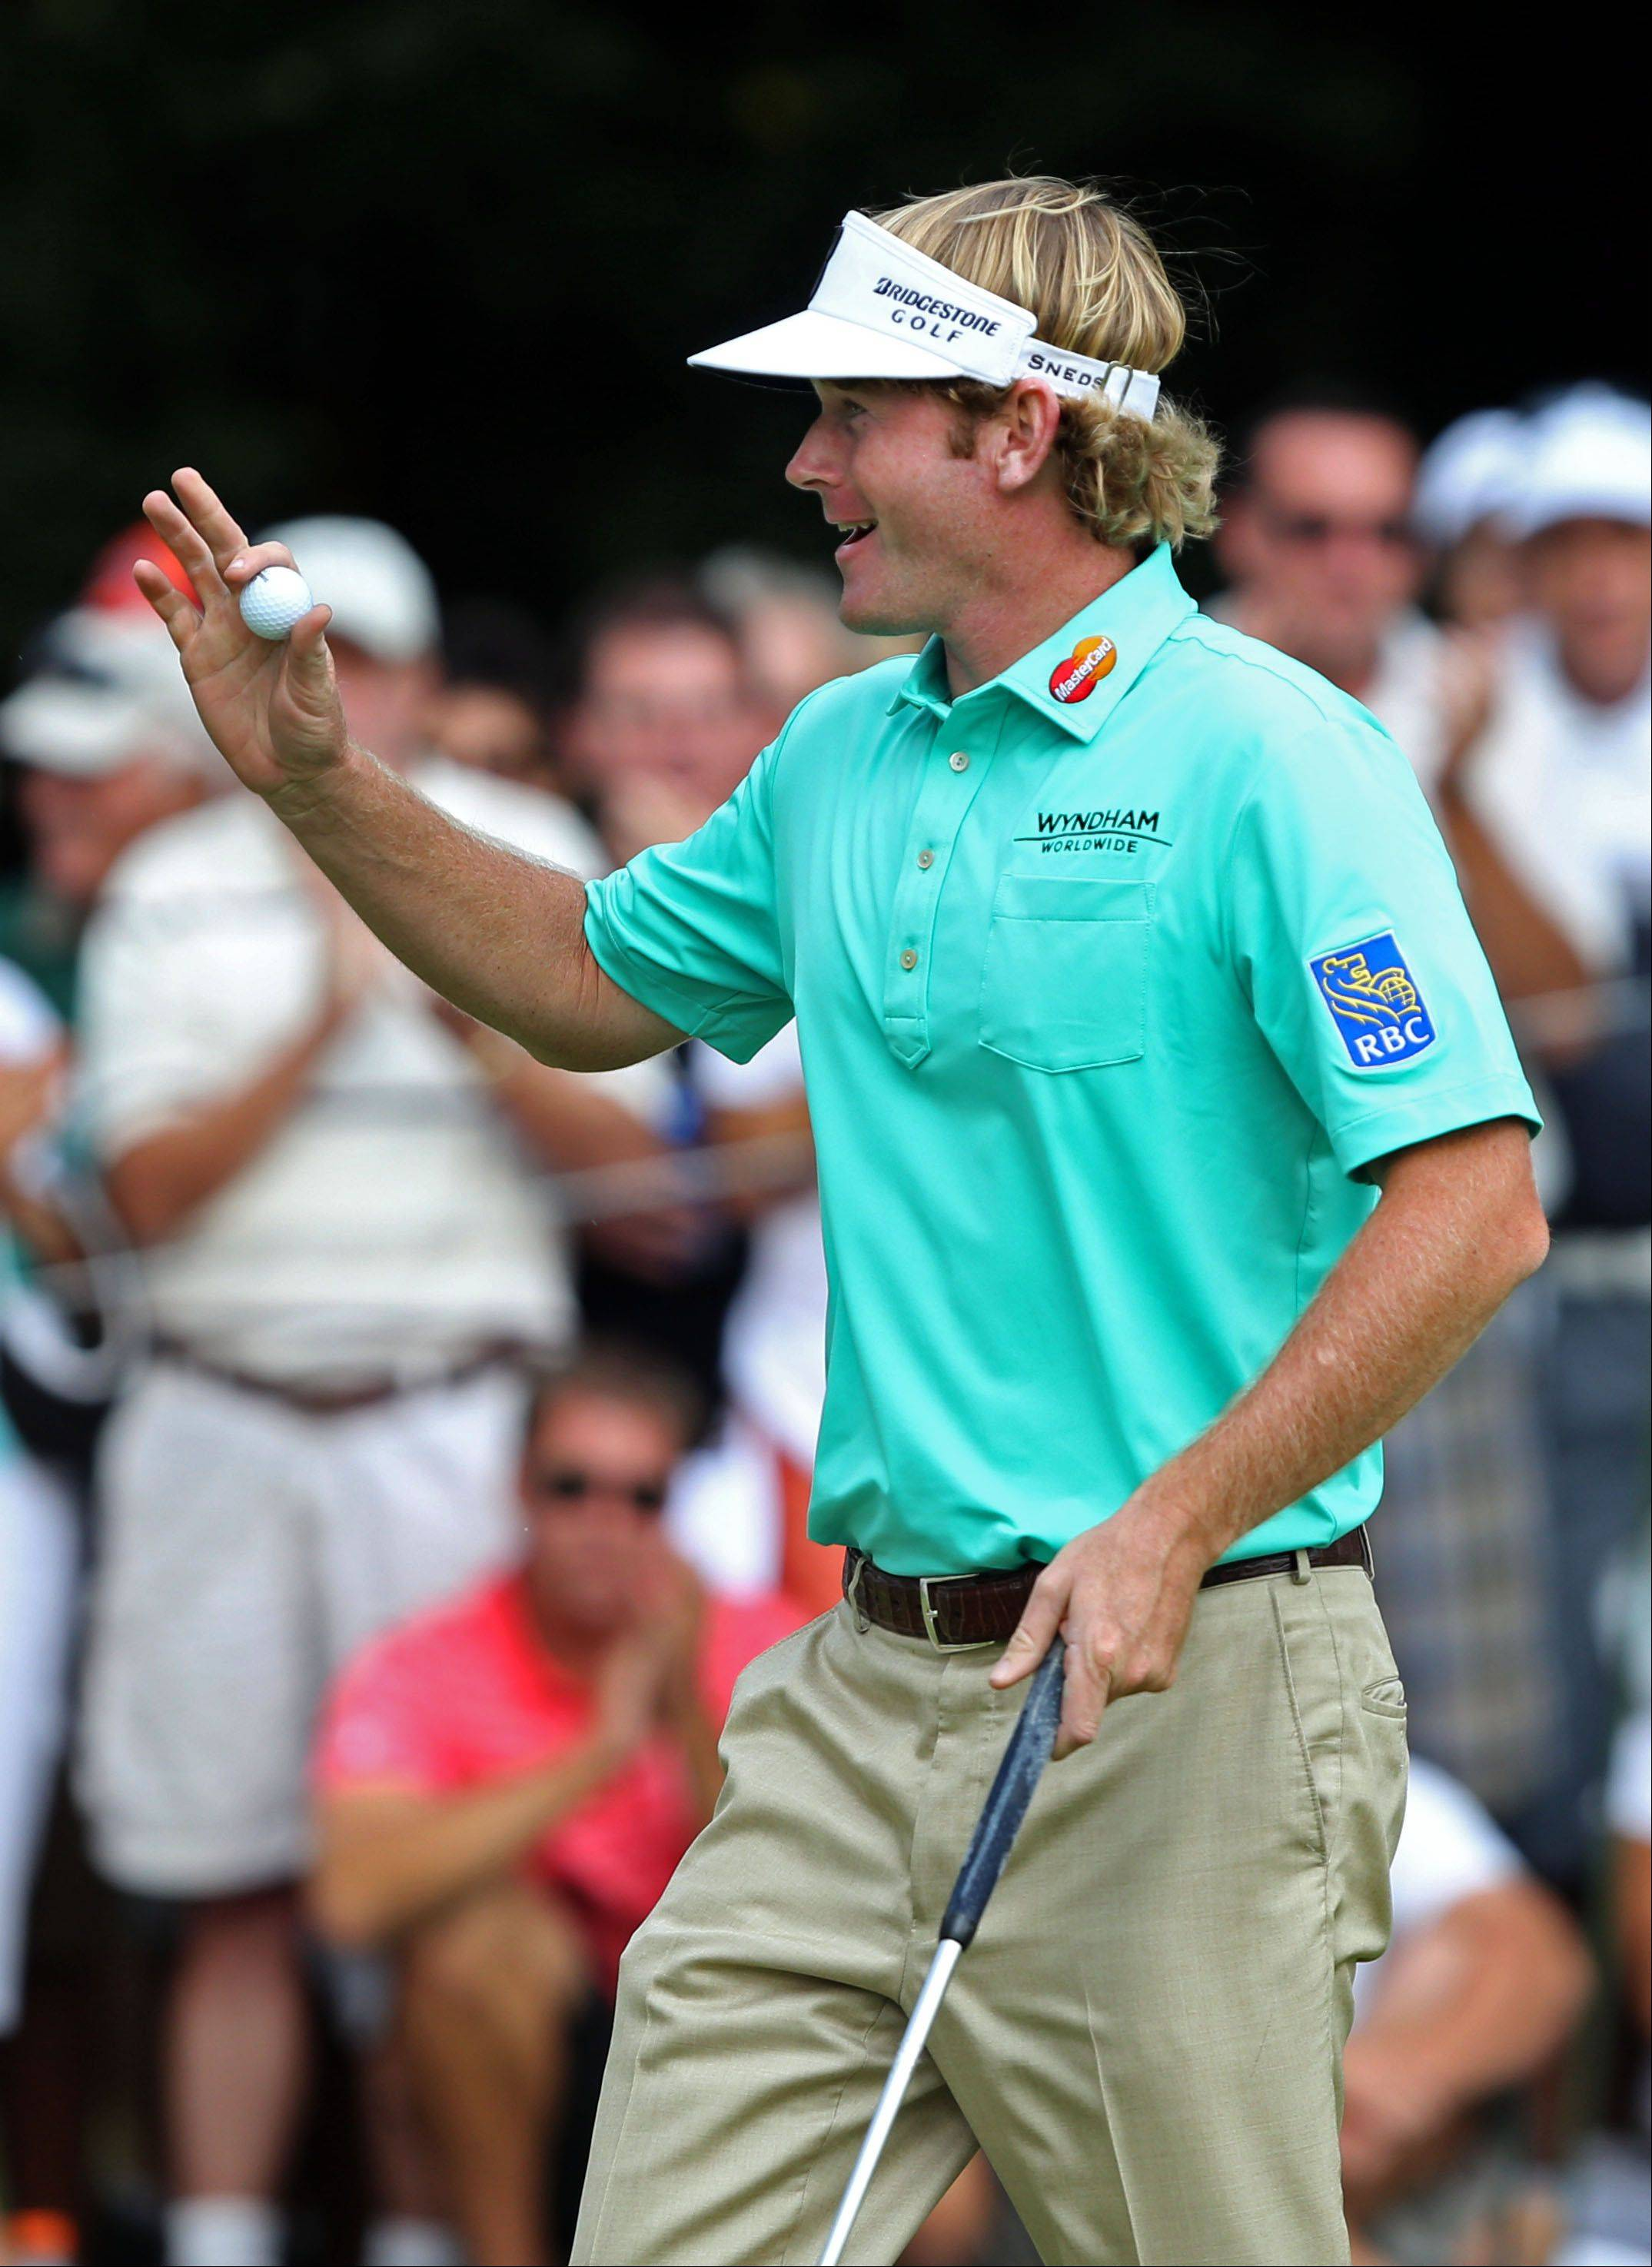 Snedeker leads BMW with string of birdies